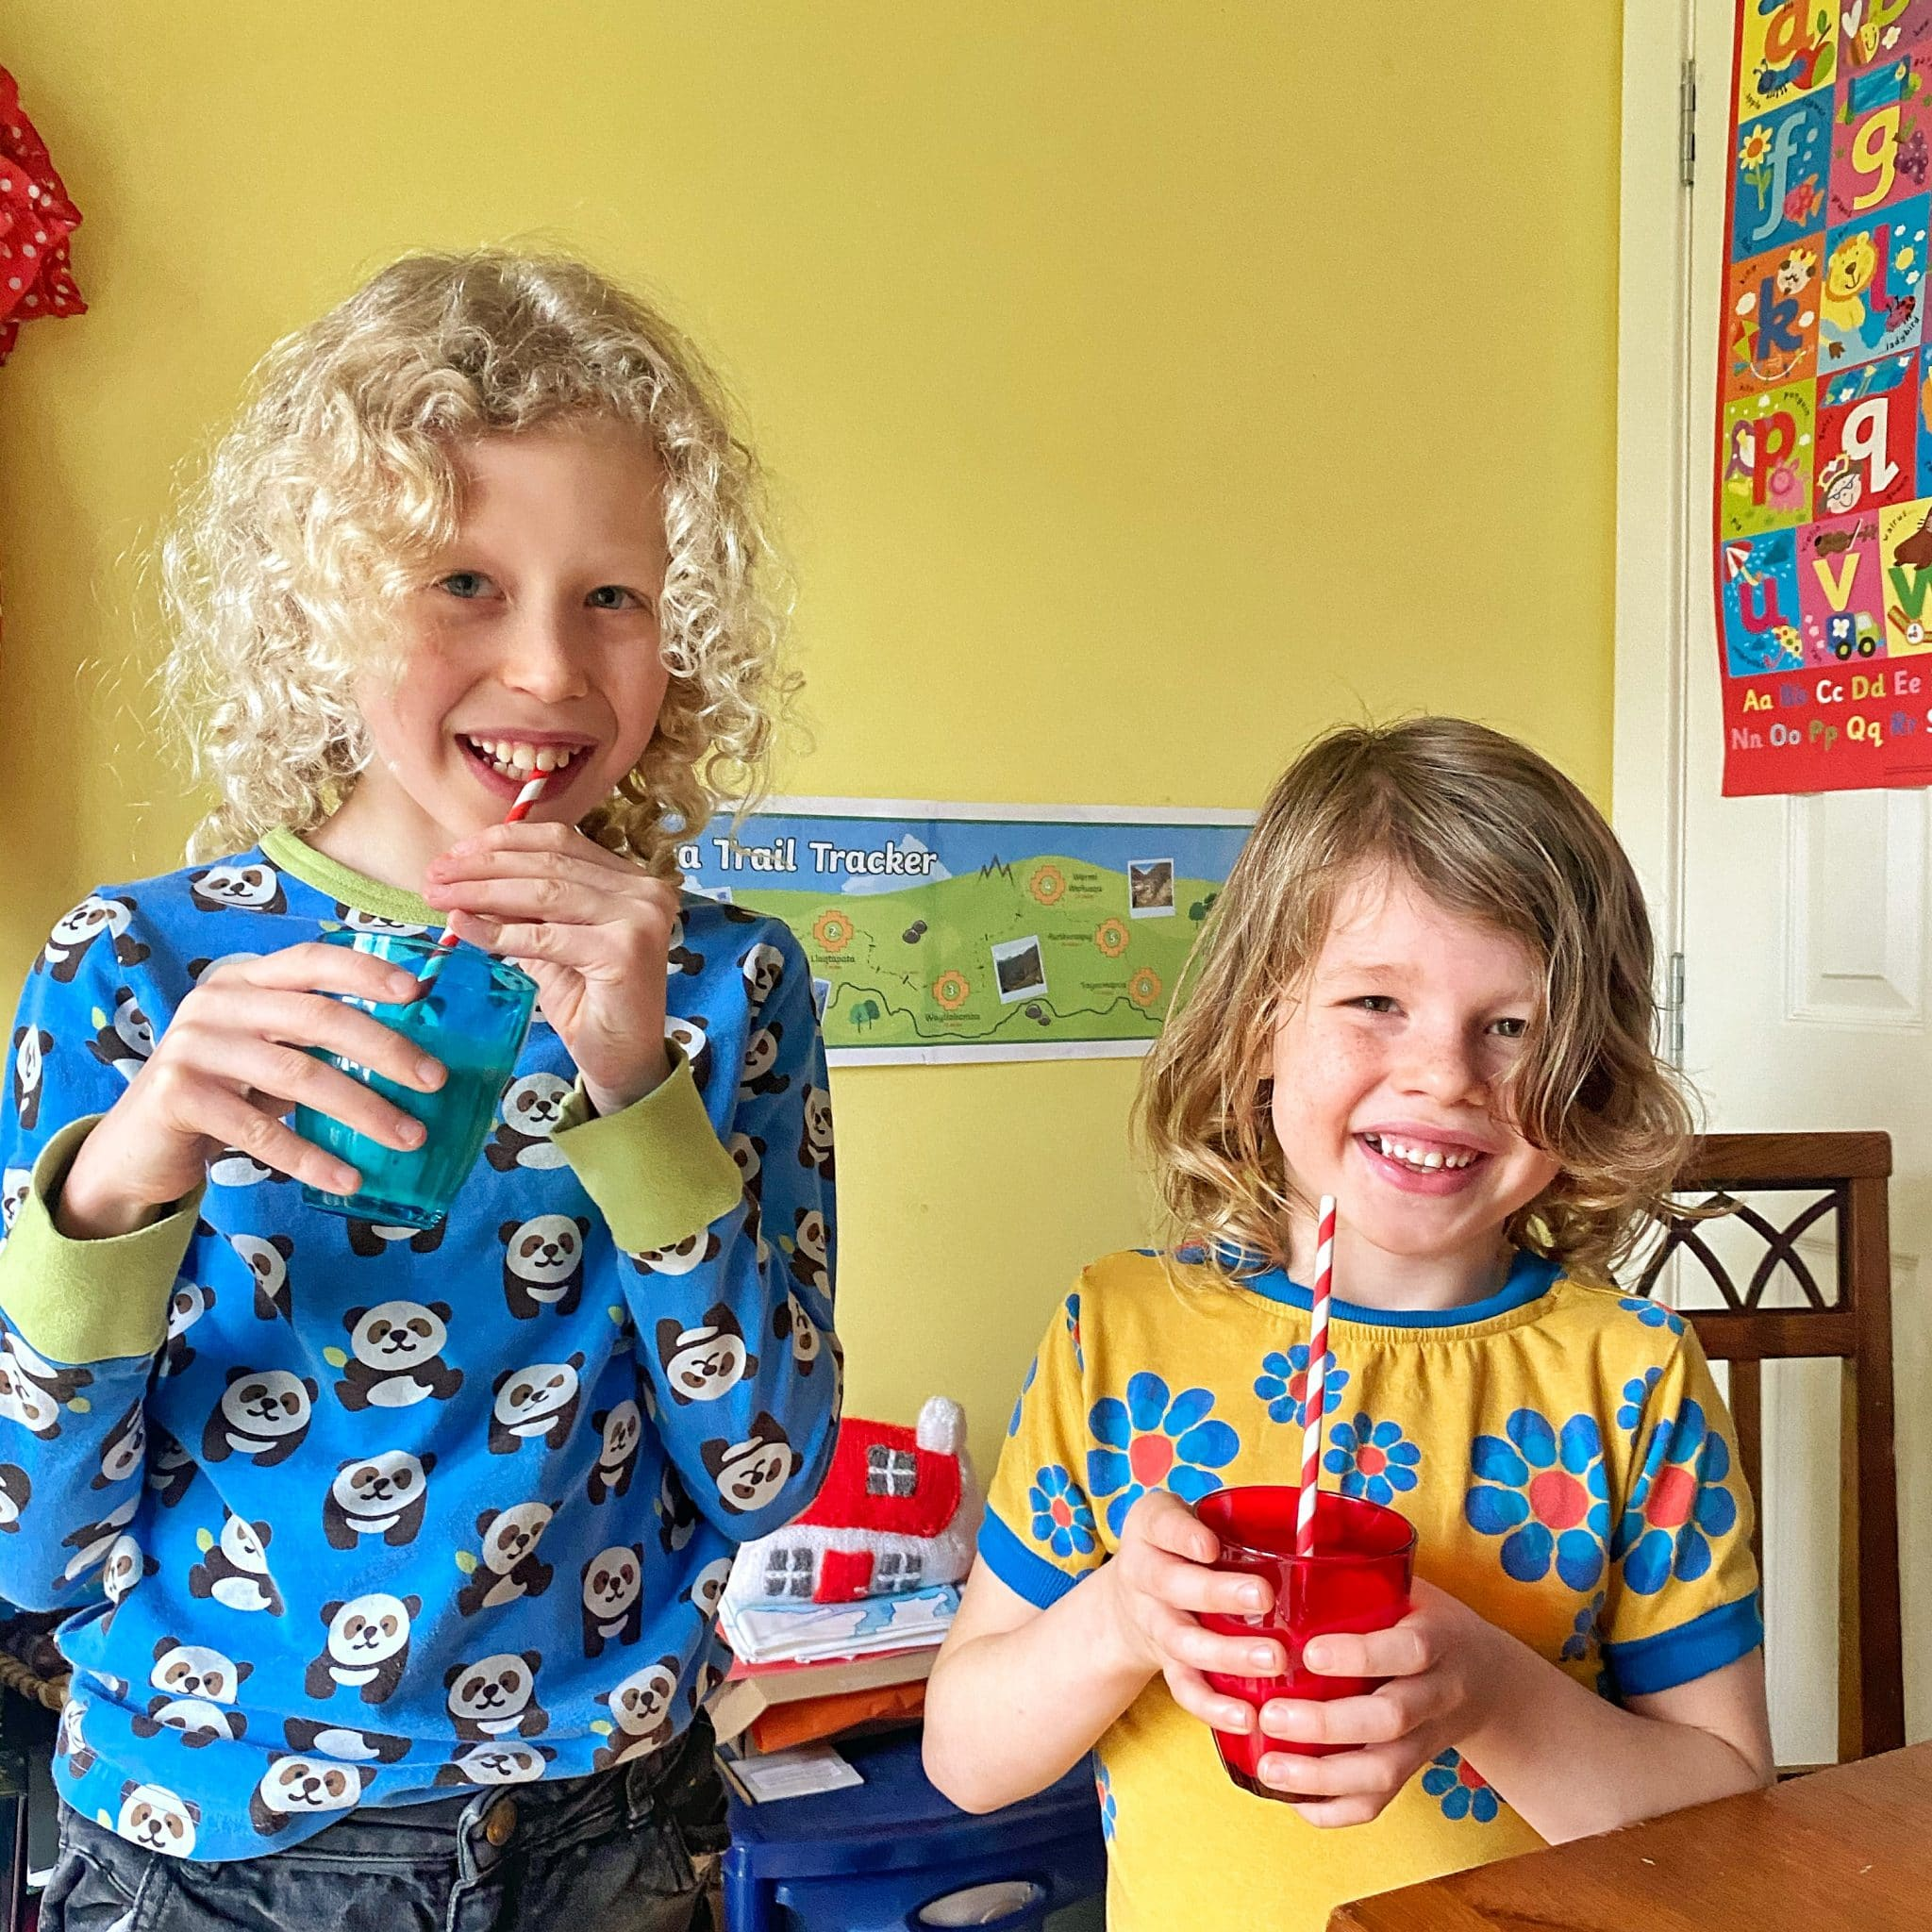 children wearing bright clothes and drinking a traditional drink from glasses